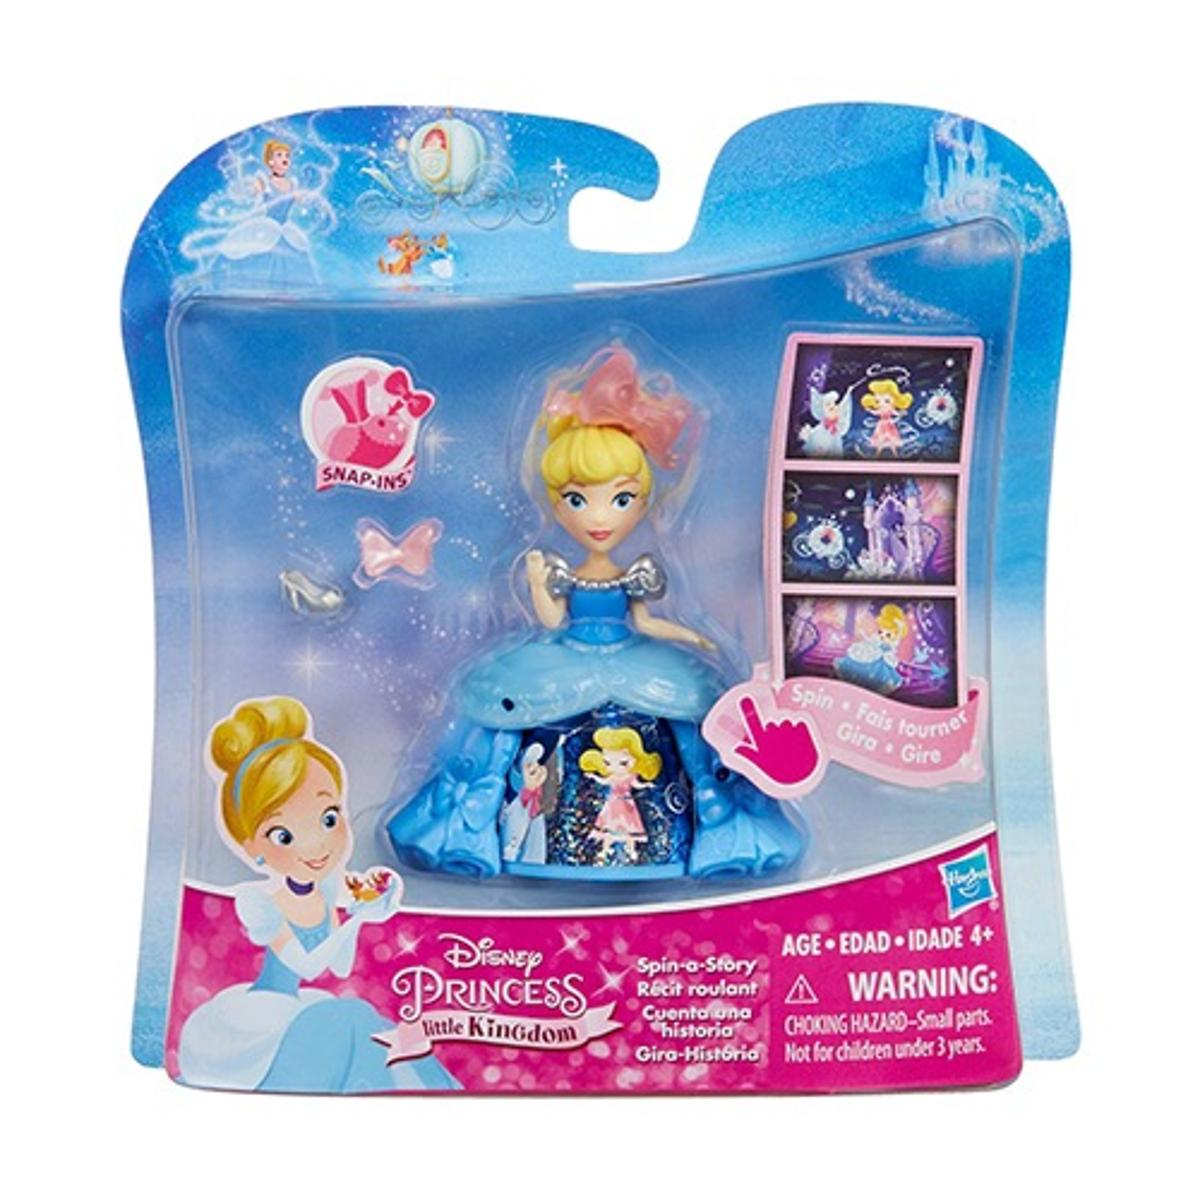 Little Kingdom Spin-A-Story Cinderella